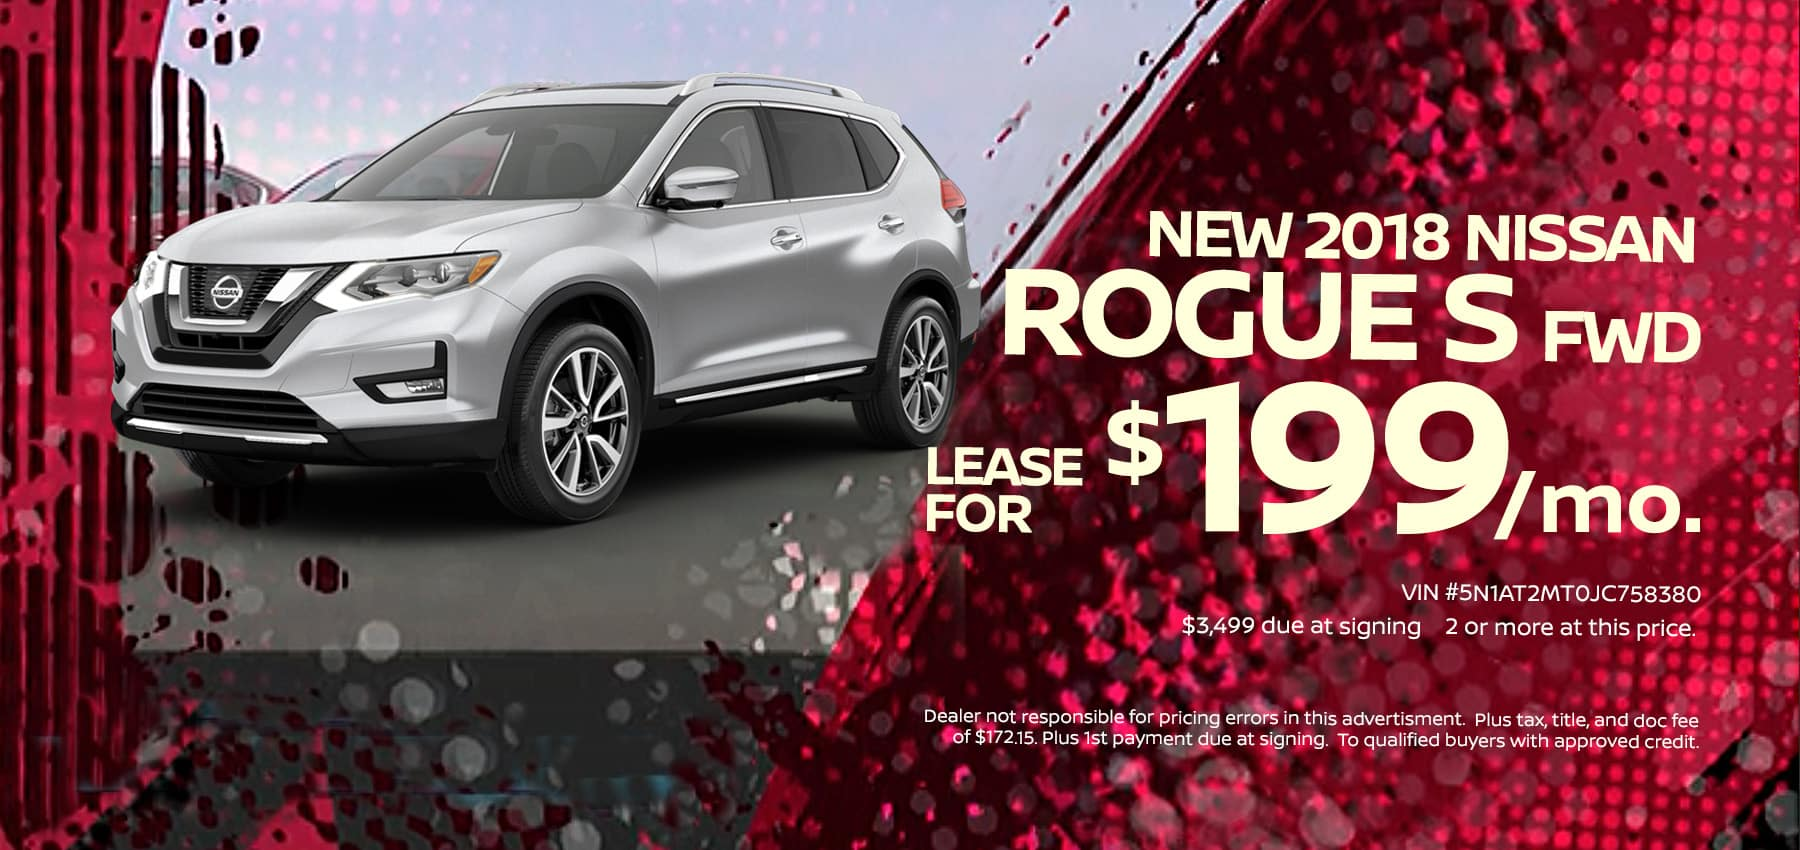 2018 Nissan Rogue March Sale at Berman Nissan of Chicago